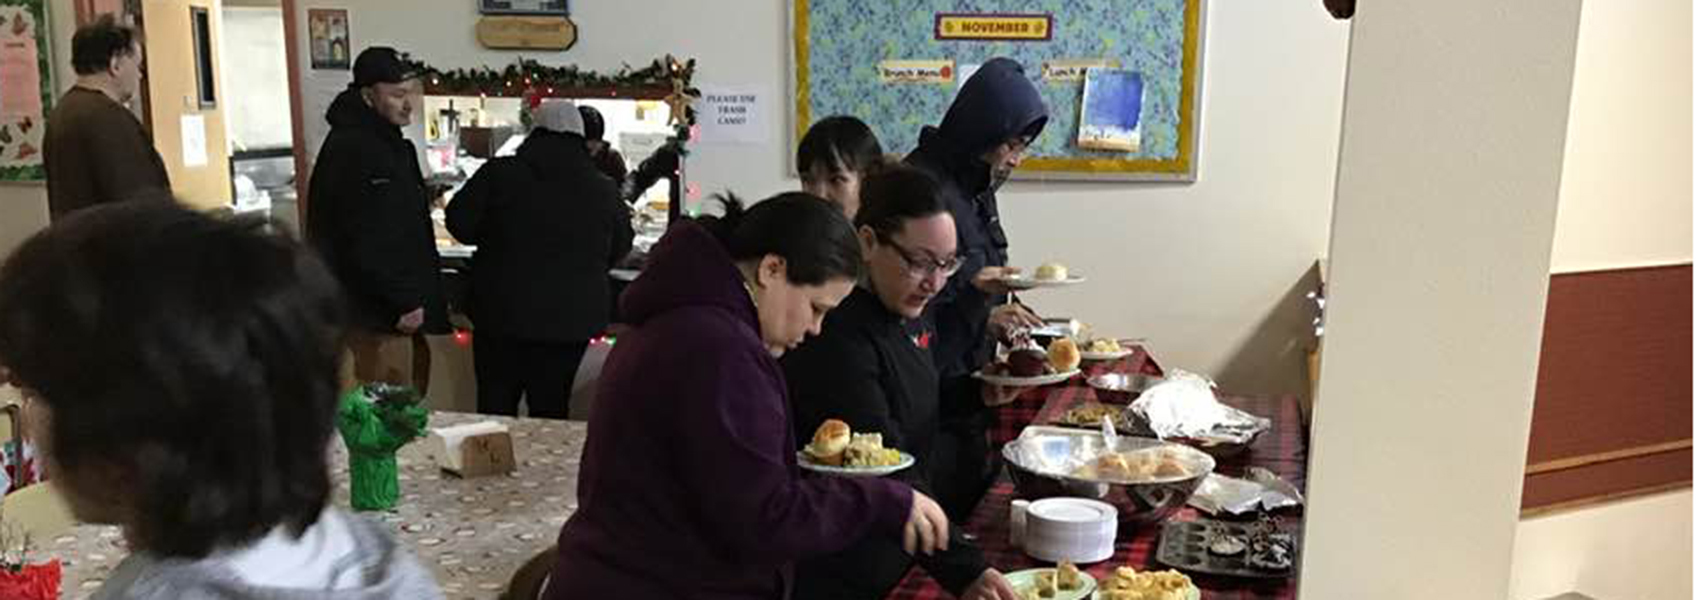 Students and members of the community have a Christmas potluck.